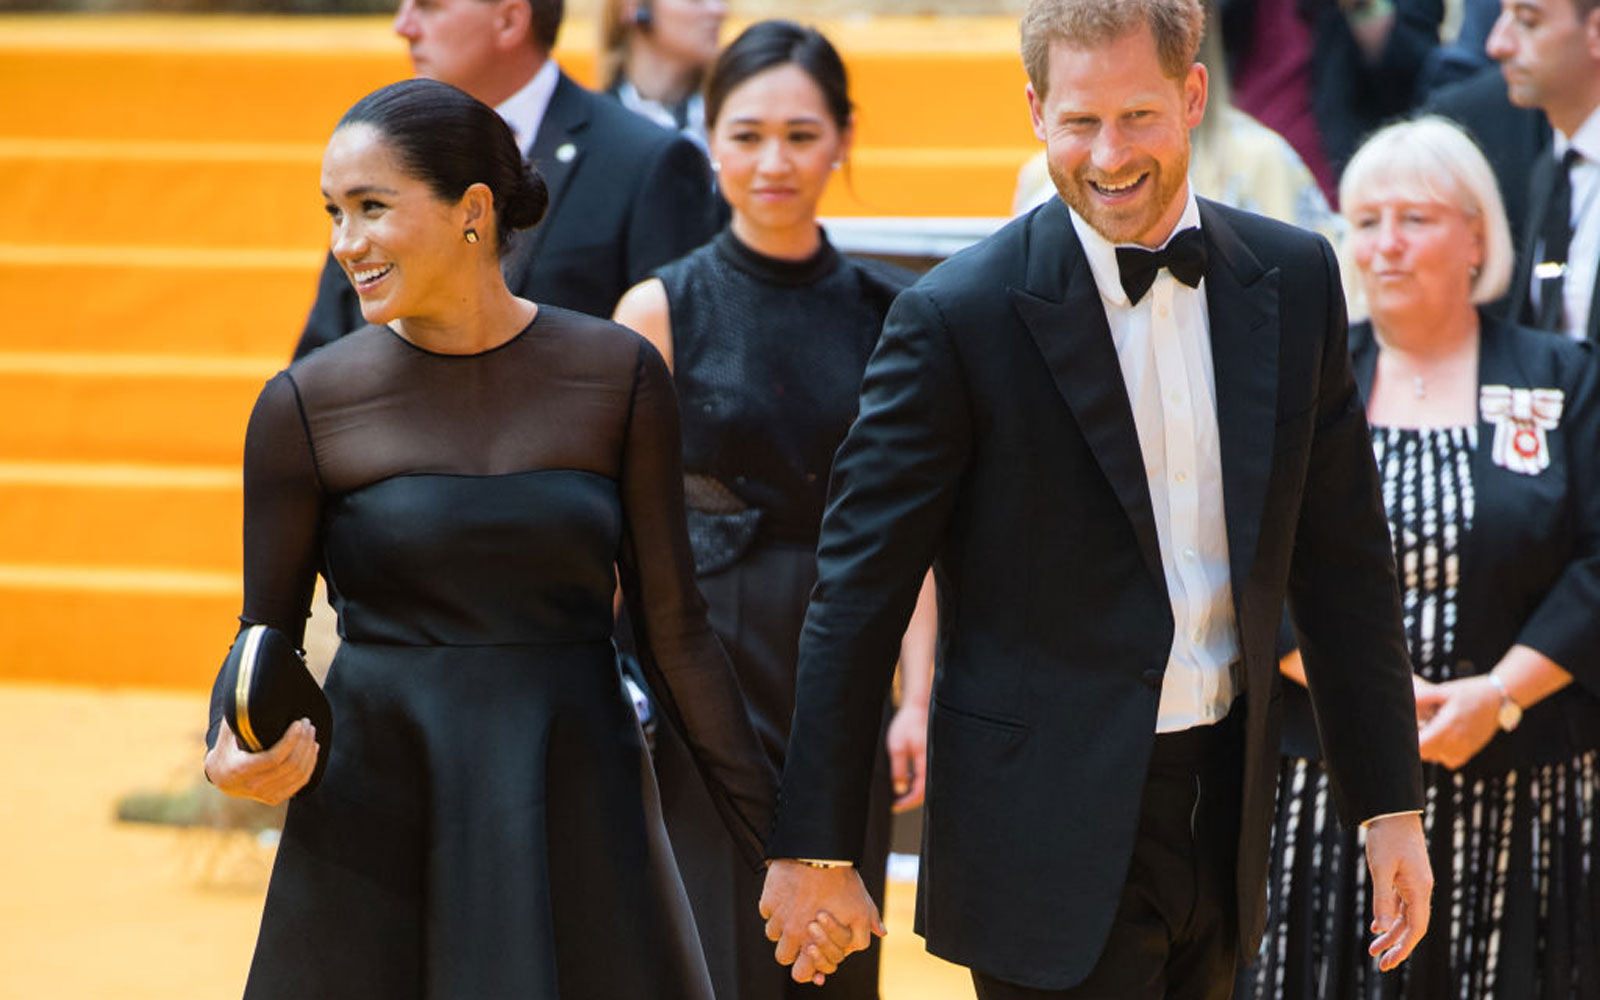 Meghan Markle and Prince Harry Unfollowed Everyone on Instagram — and They Want You to Tell Them Who to Follow Next